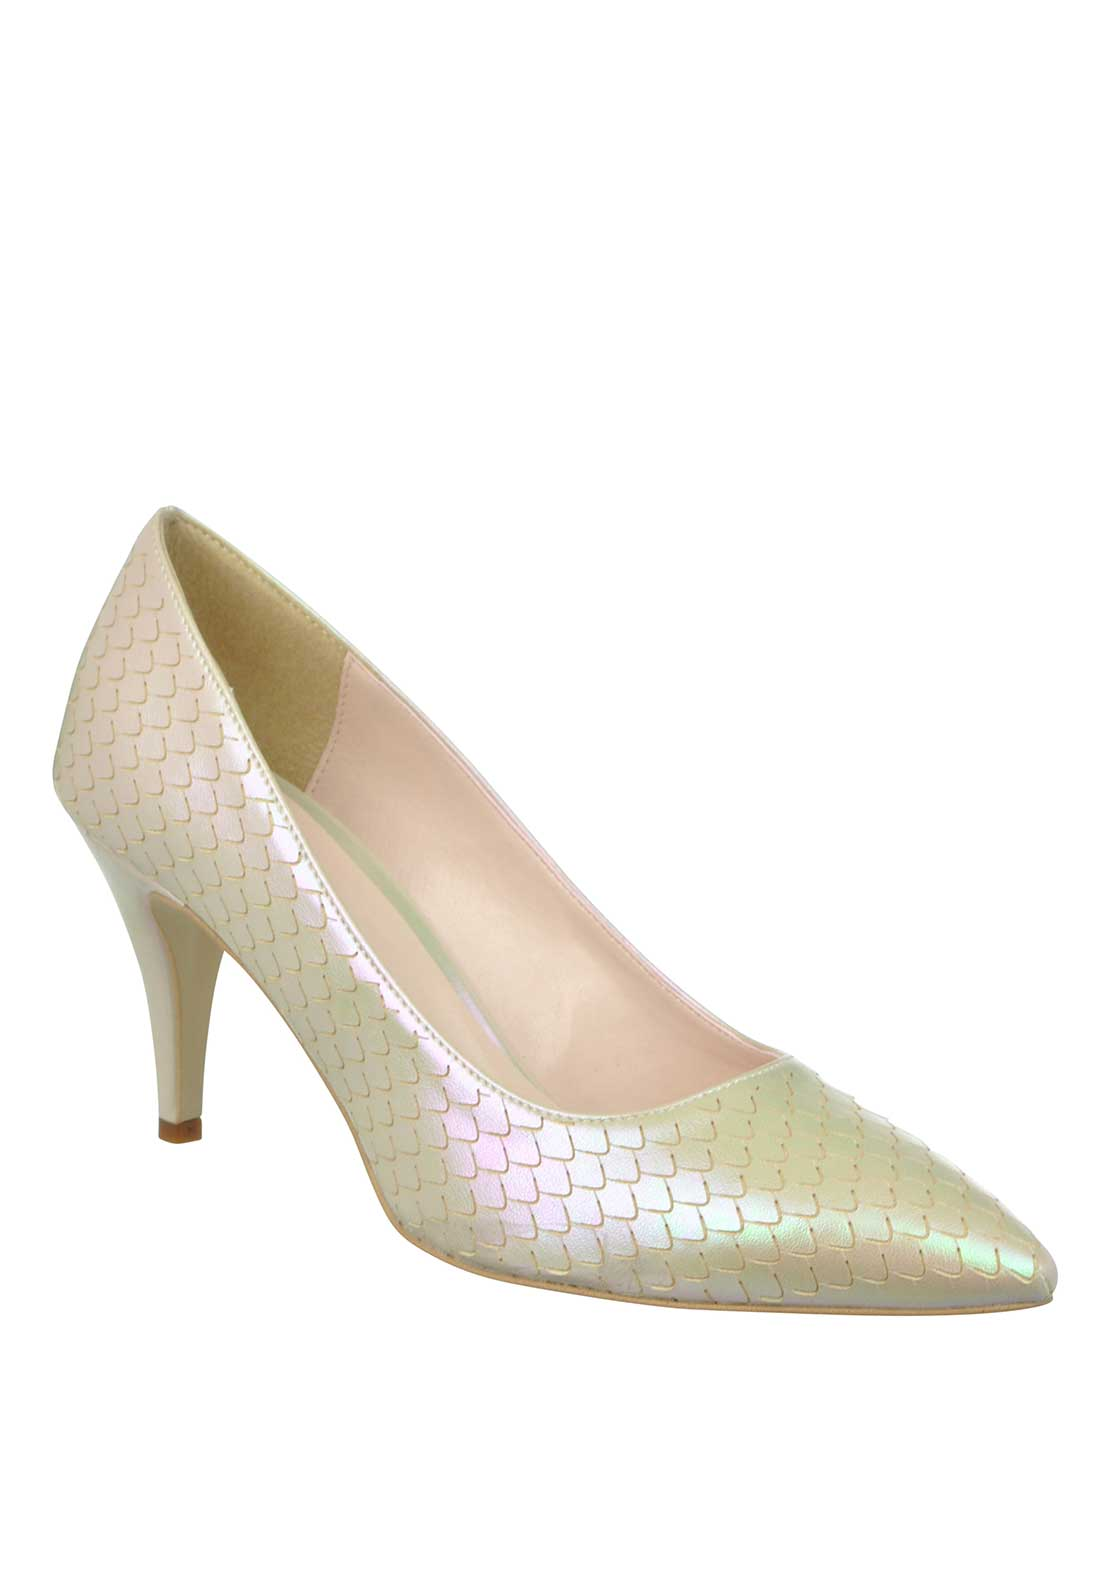 McElhinney's Shimmering Mermaid Print Pointed Toe Low Heeled Shoes, Cream